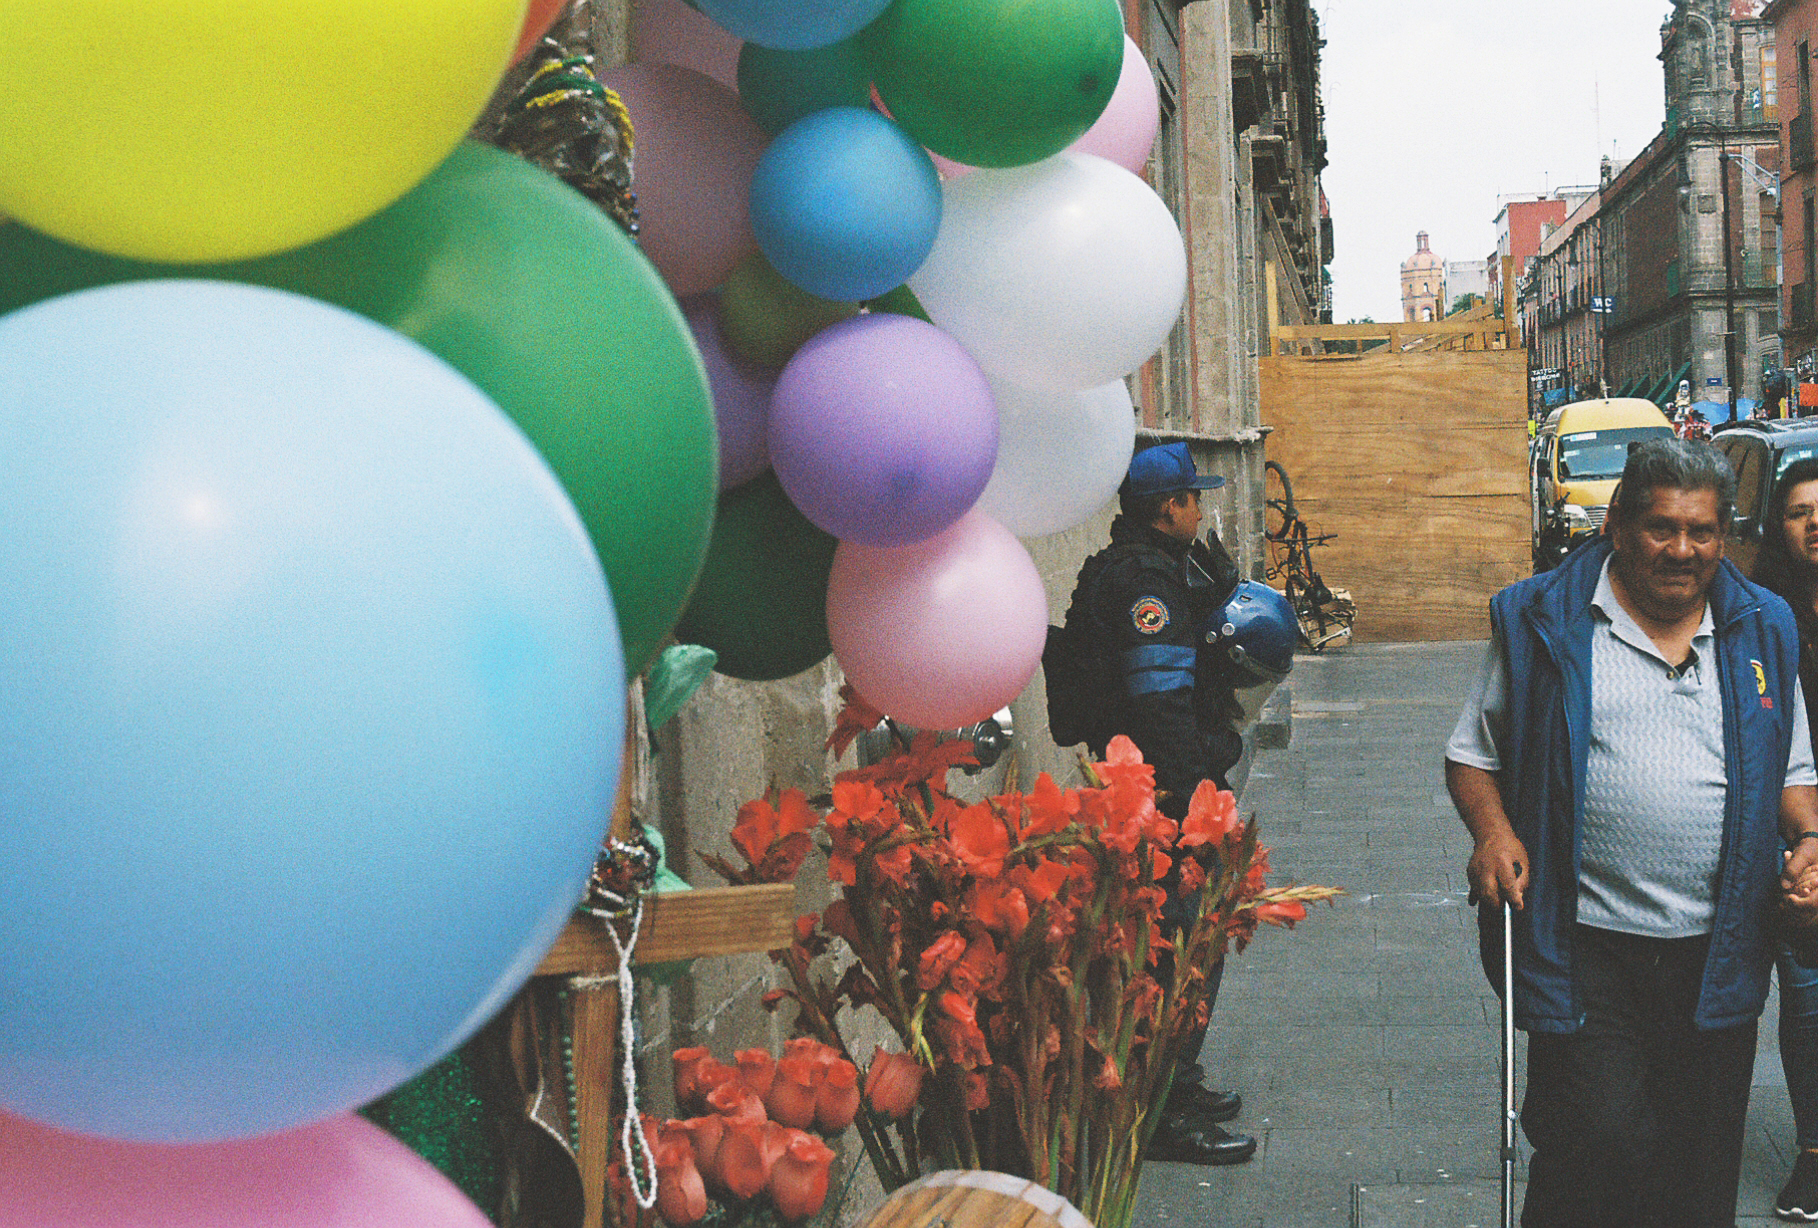 An old man with a cane walks by an abundance of balloons. Mexico City. By Nick Barry